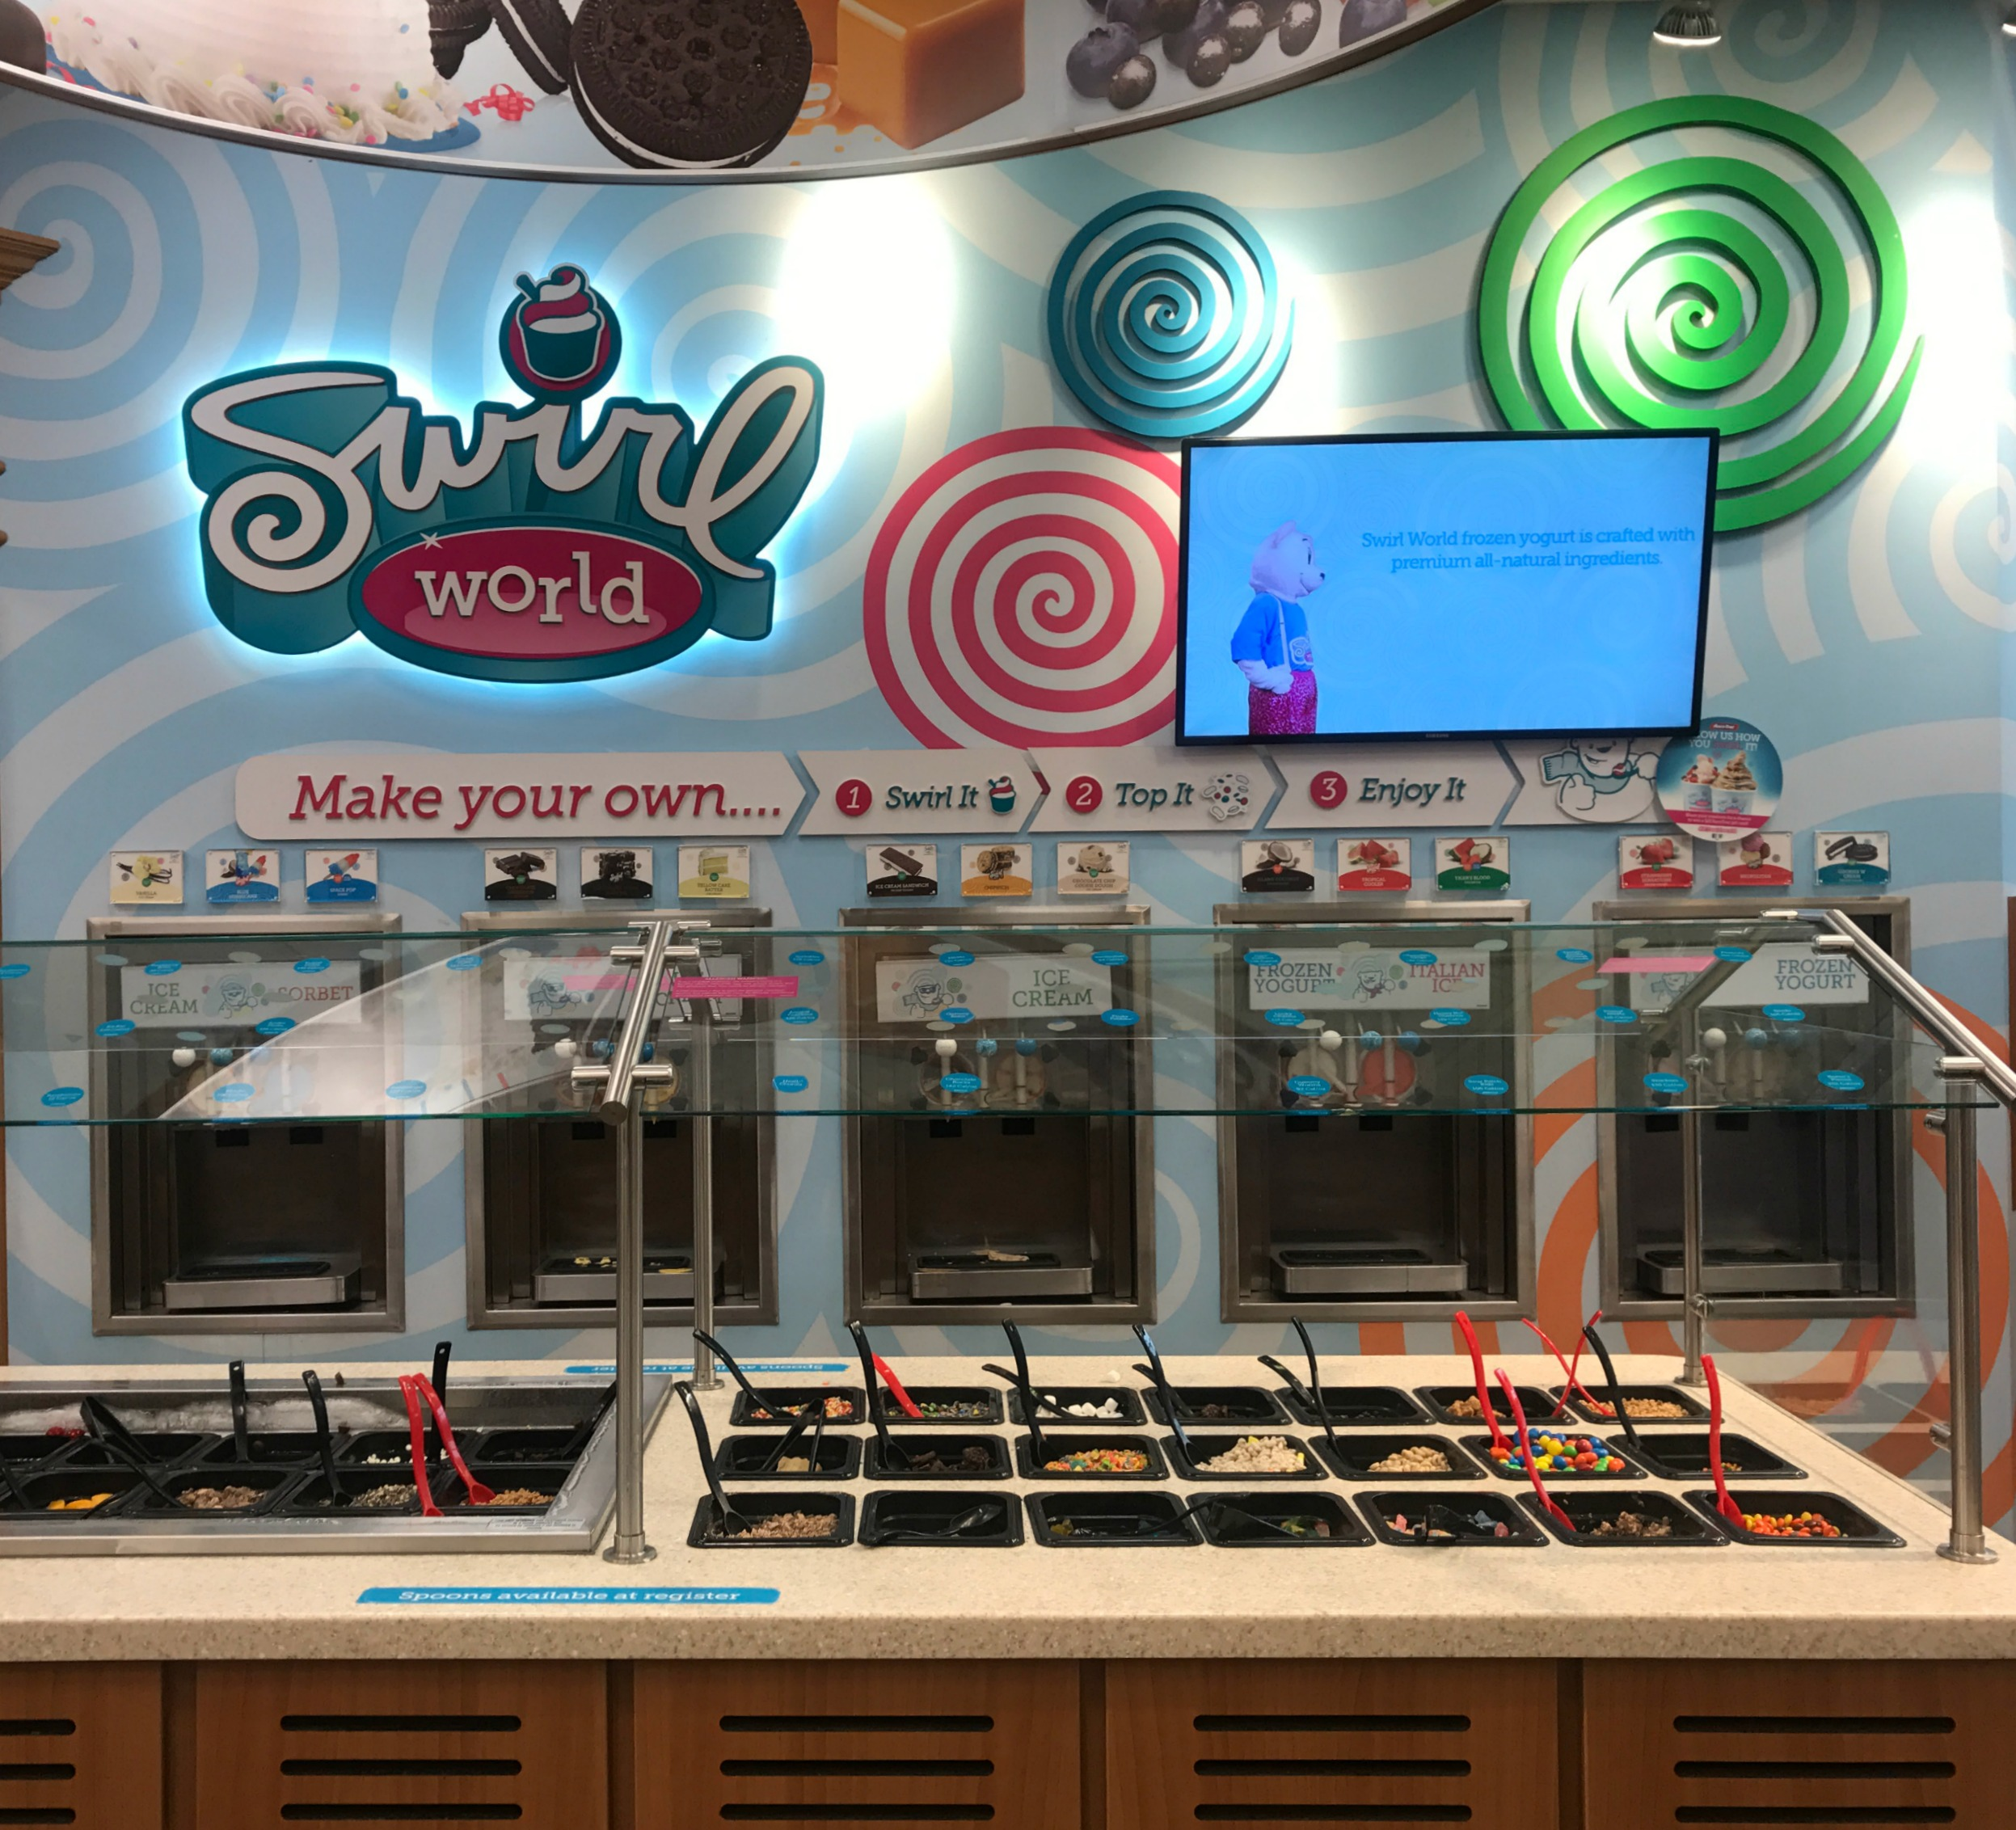 Frozen Treat Bar at RaceTrac Swirl World